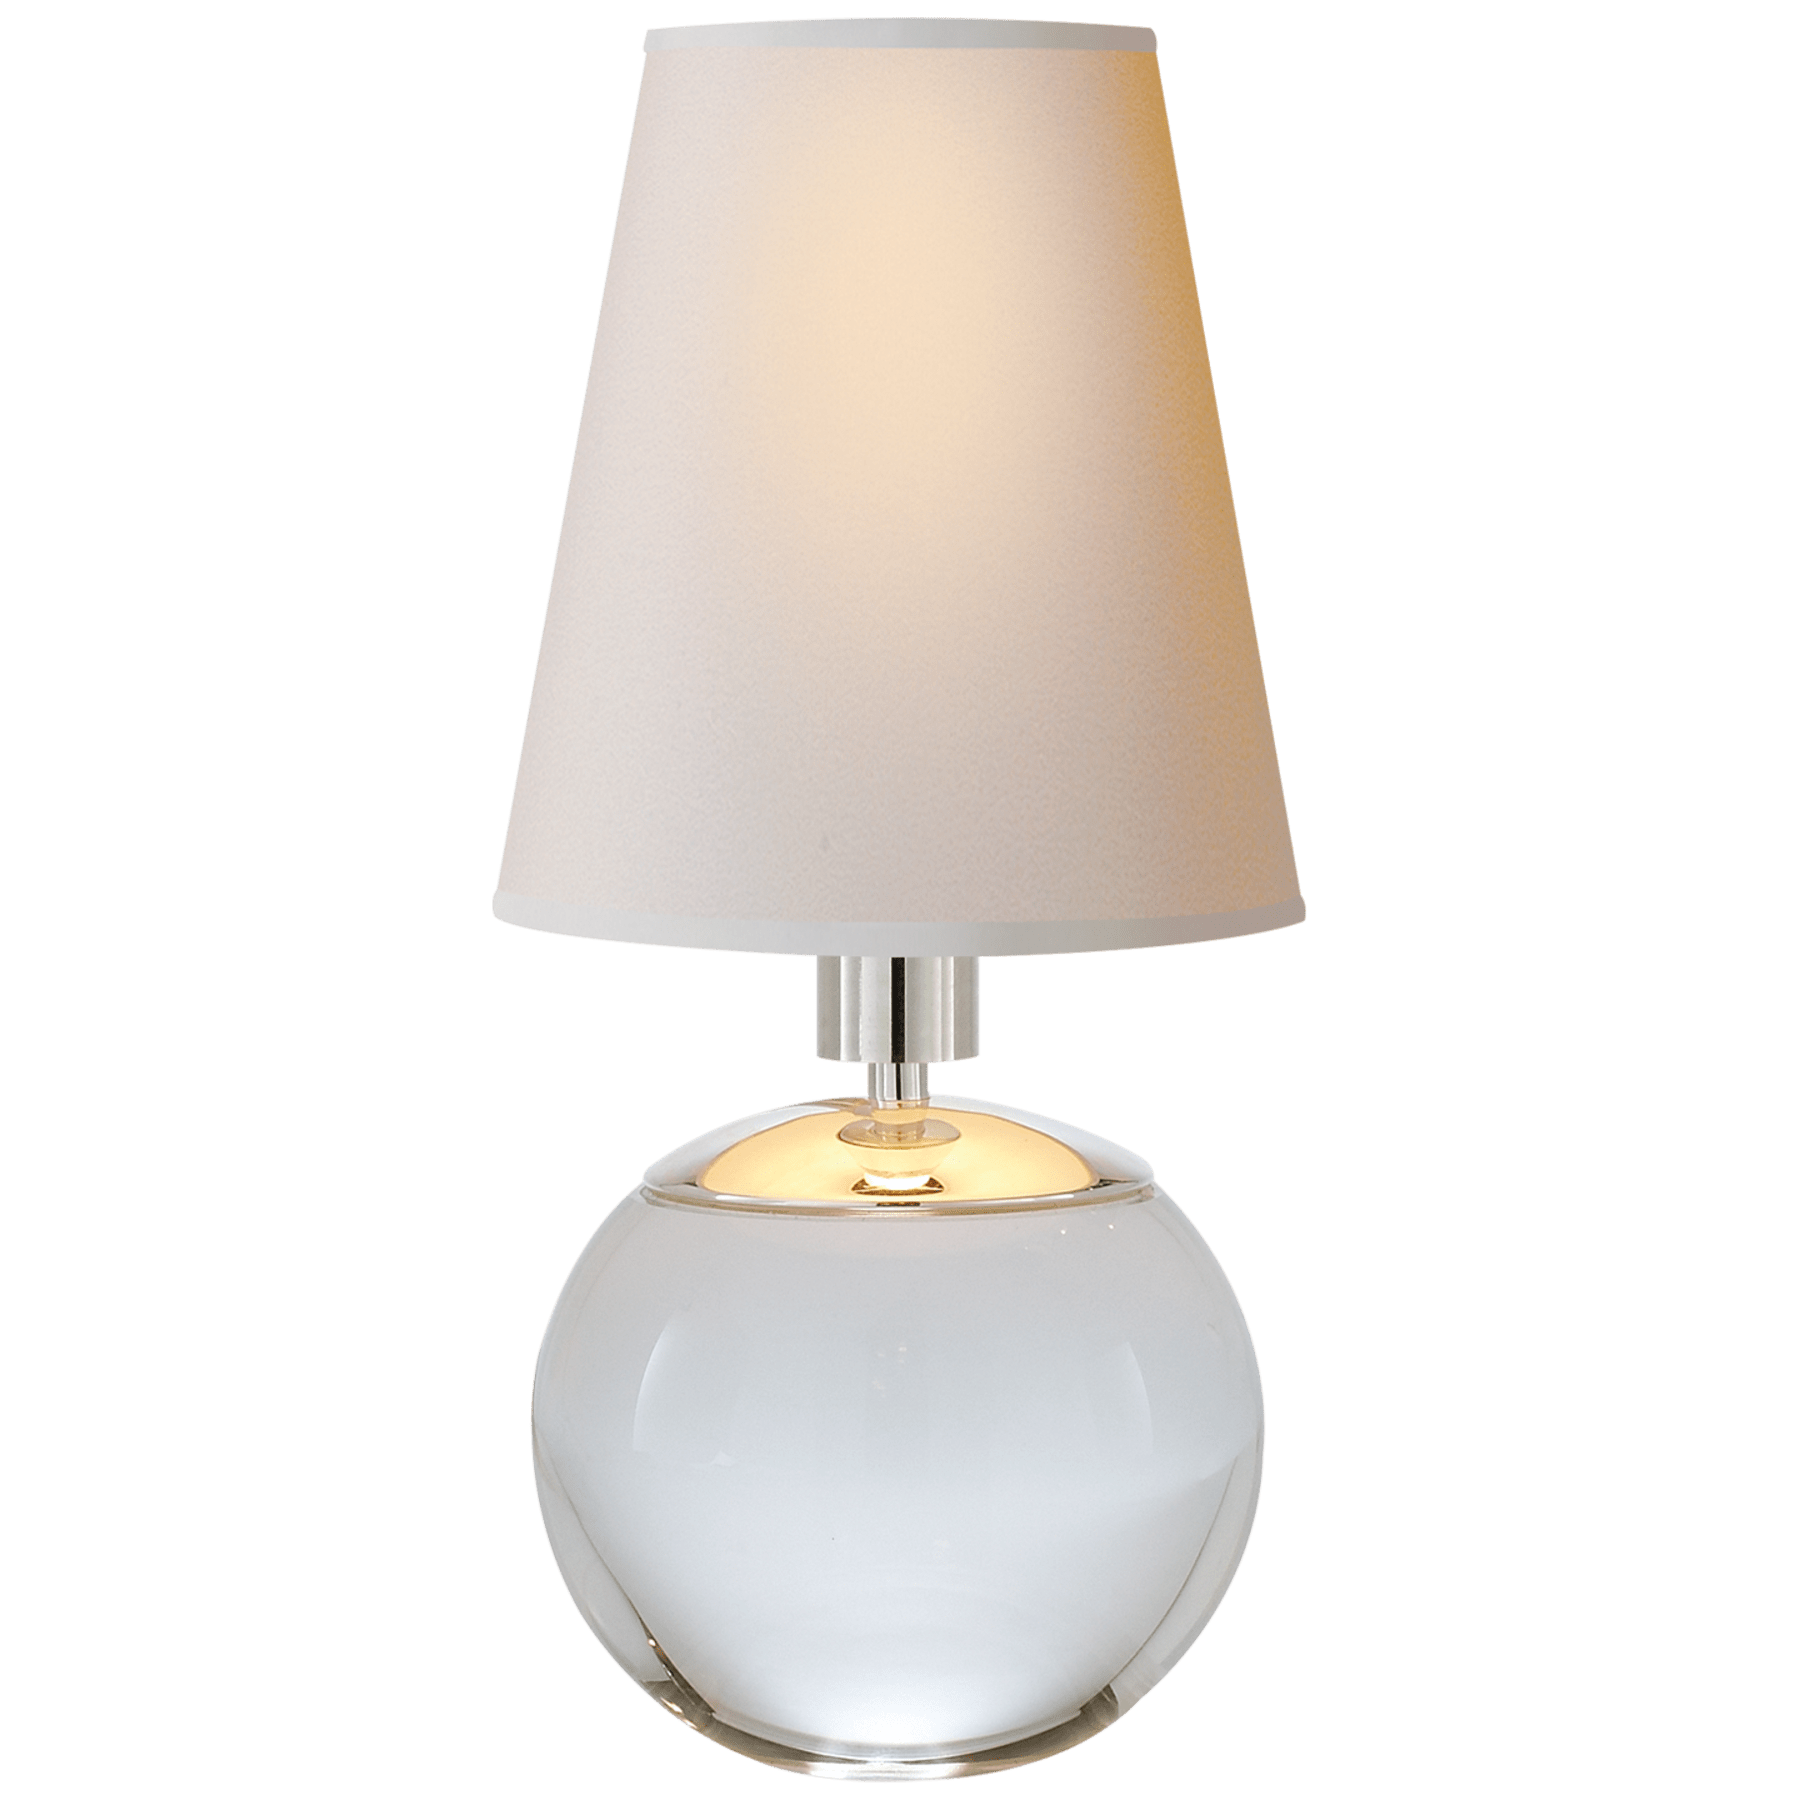 Tiny Terri Round Accent Lamp